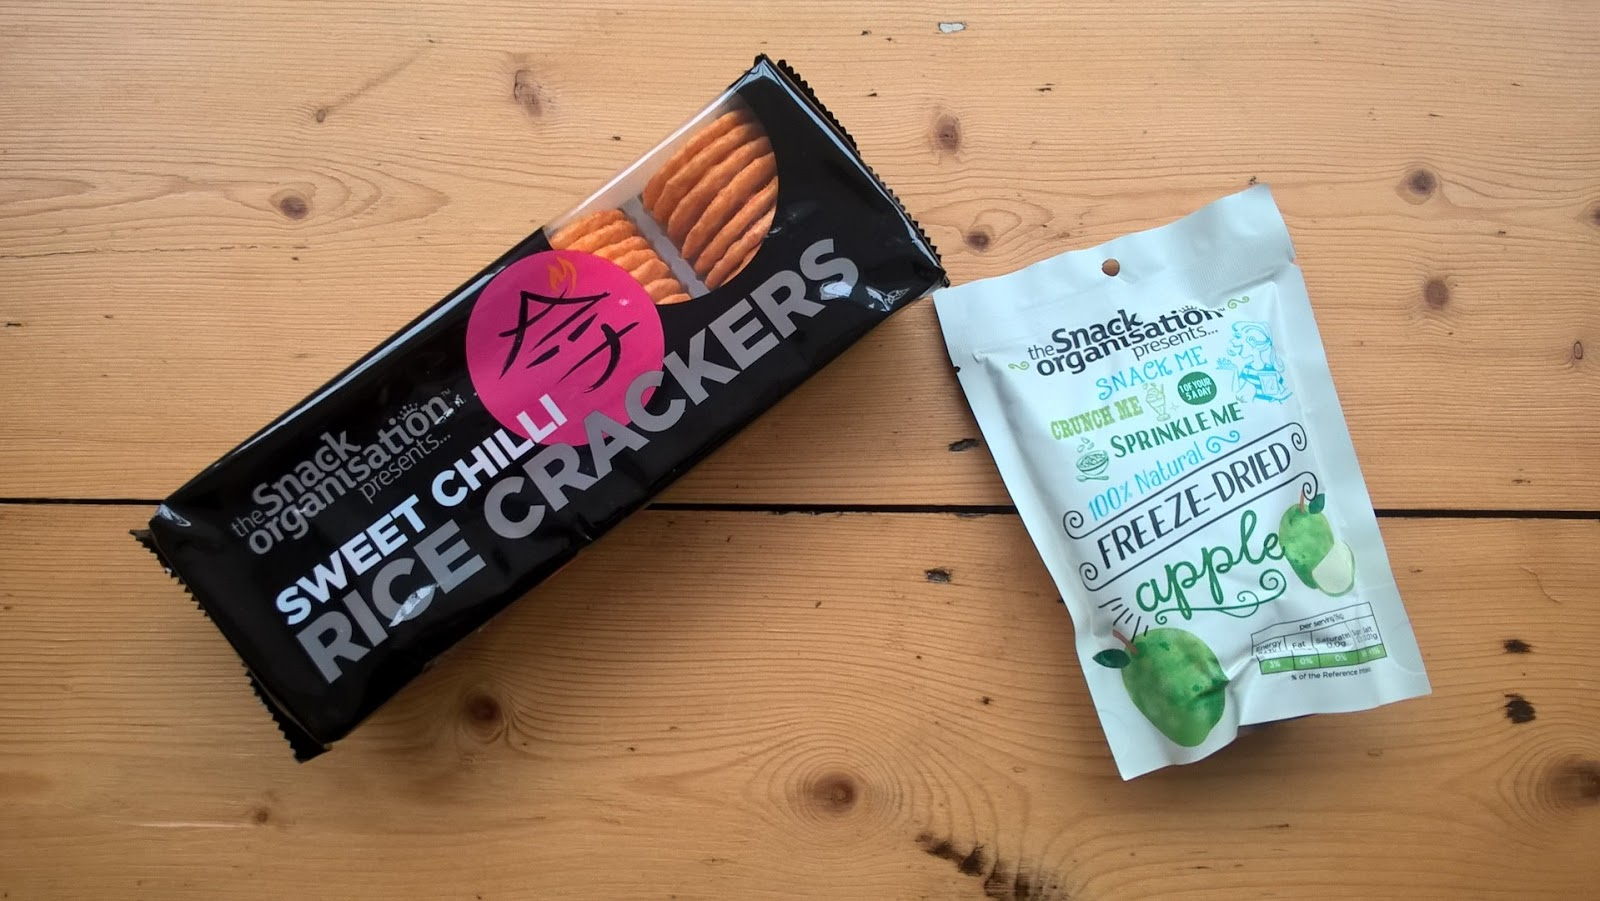 Snacks from The Snack Organisation